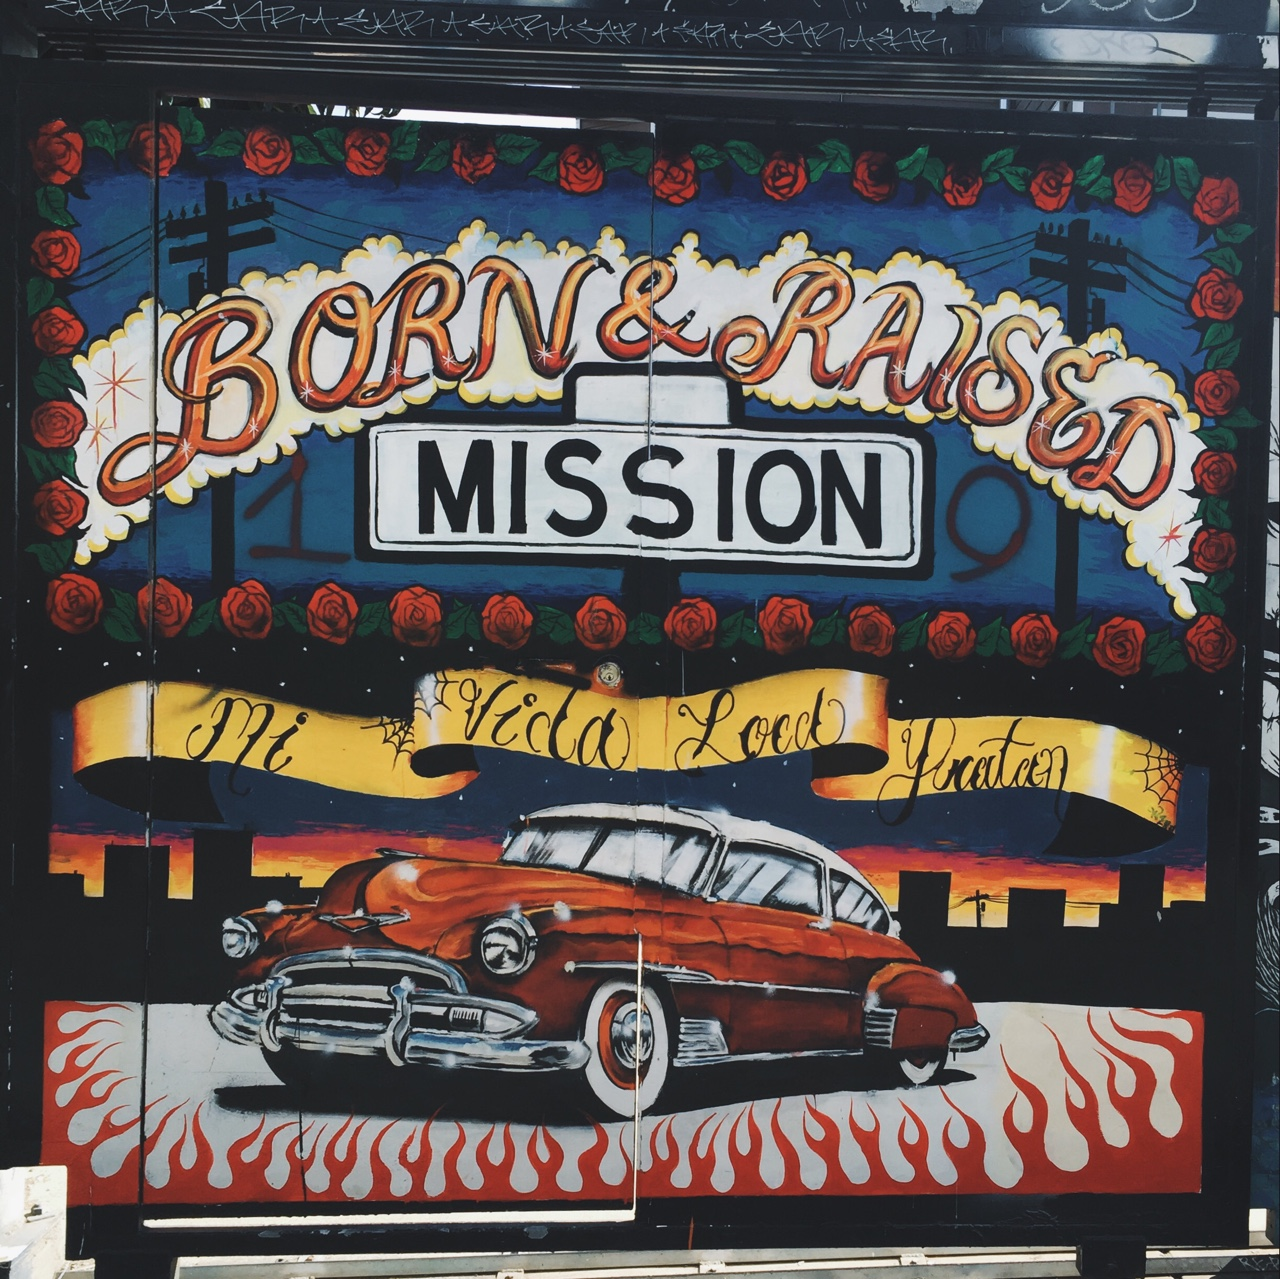 See the famous murals in San Francisco's mission district